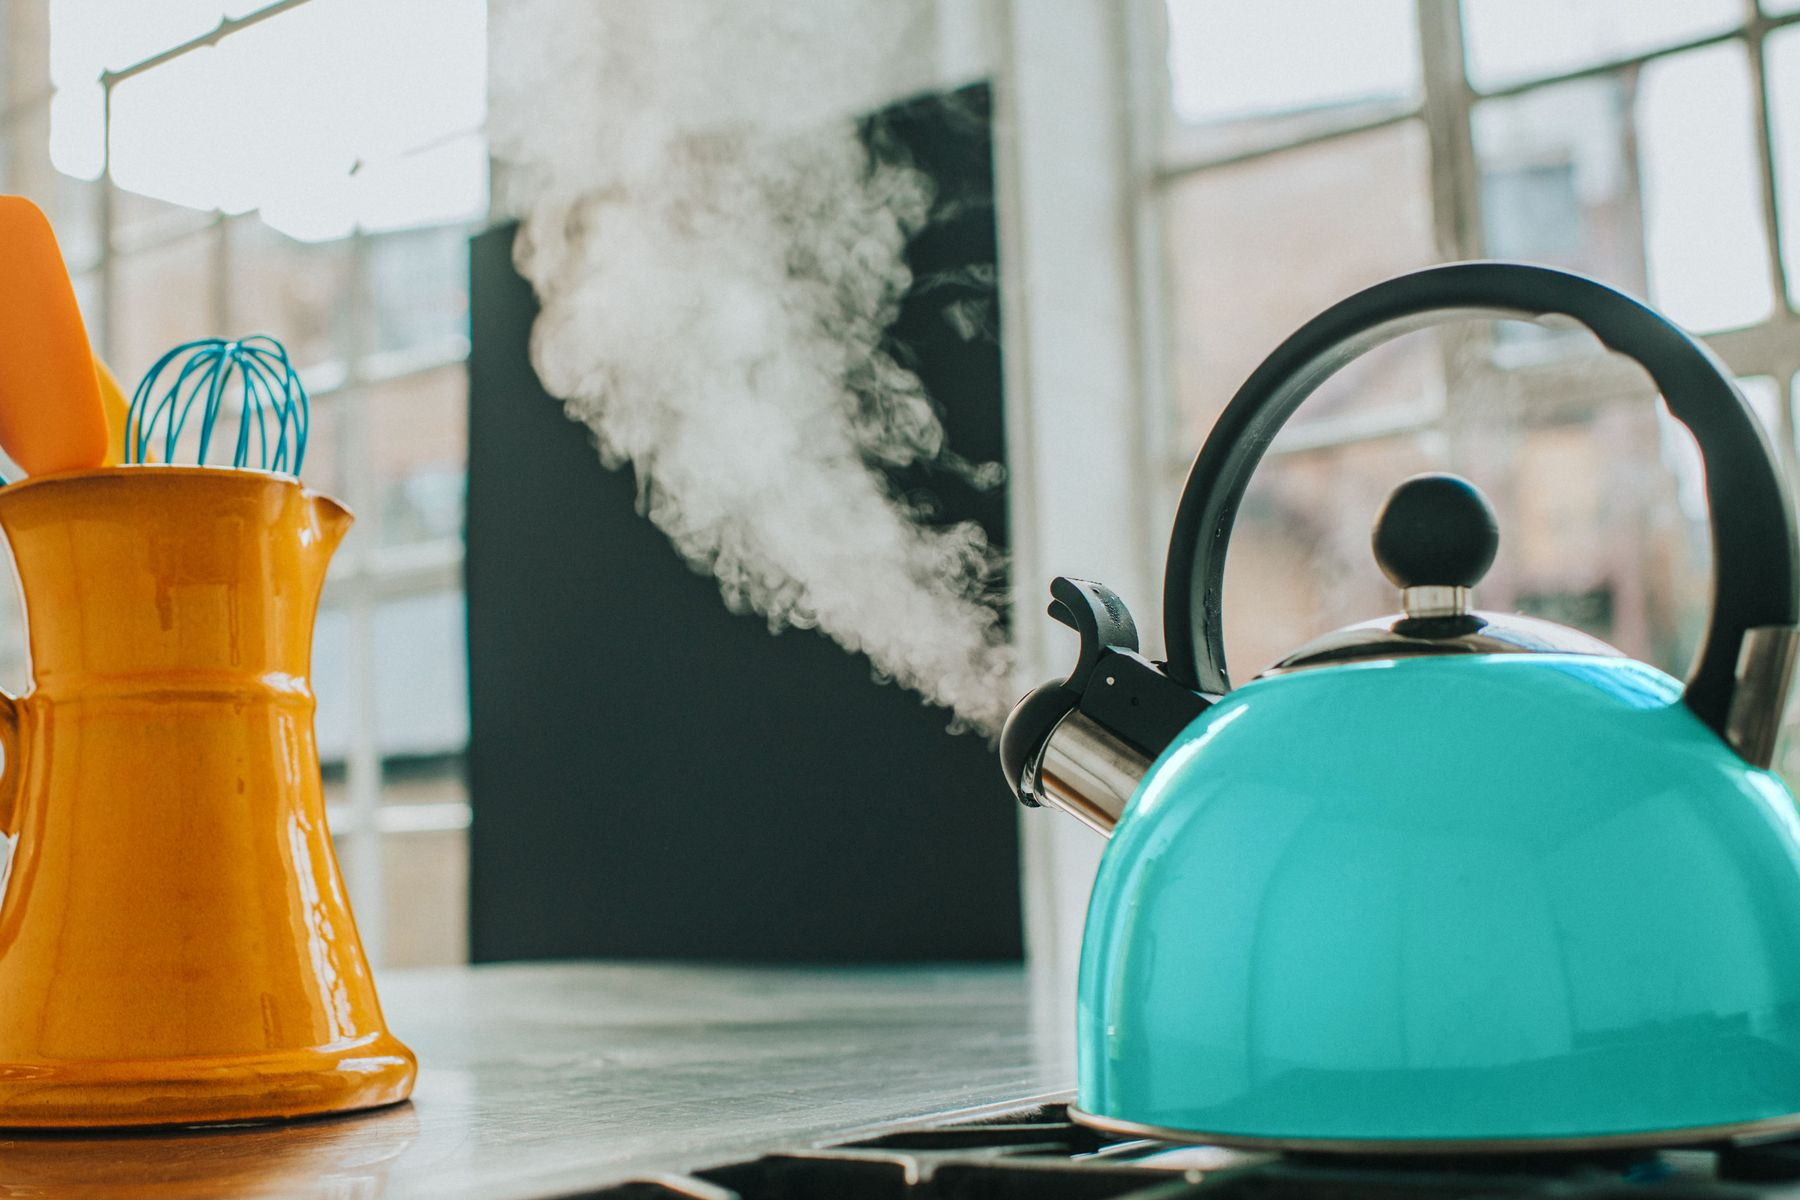 How to clean a kettle